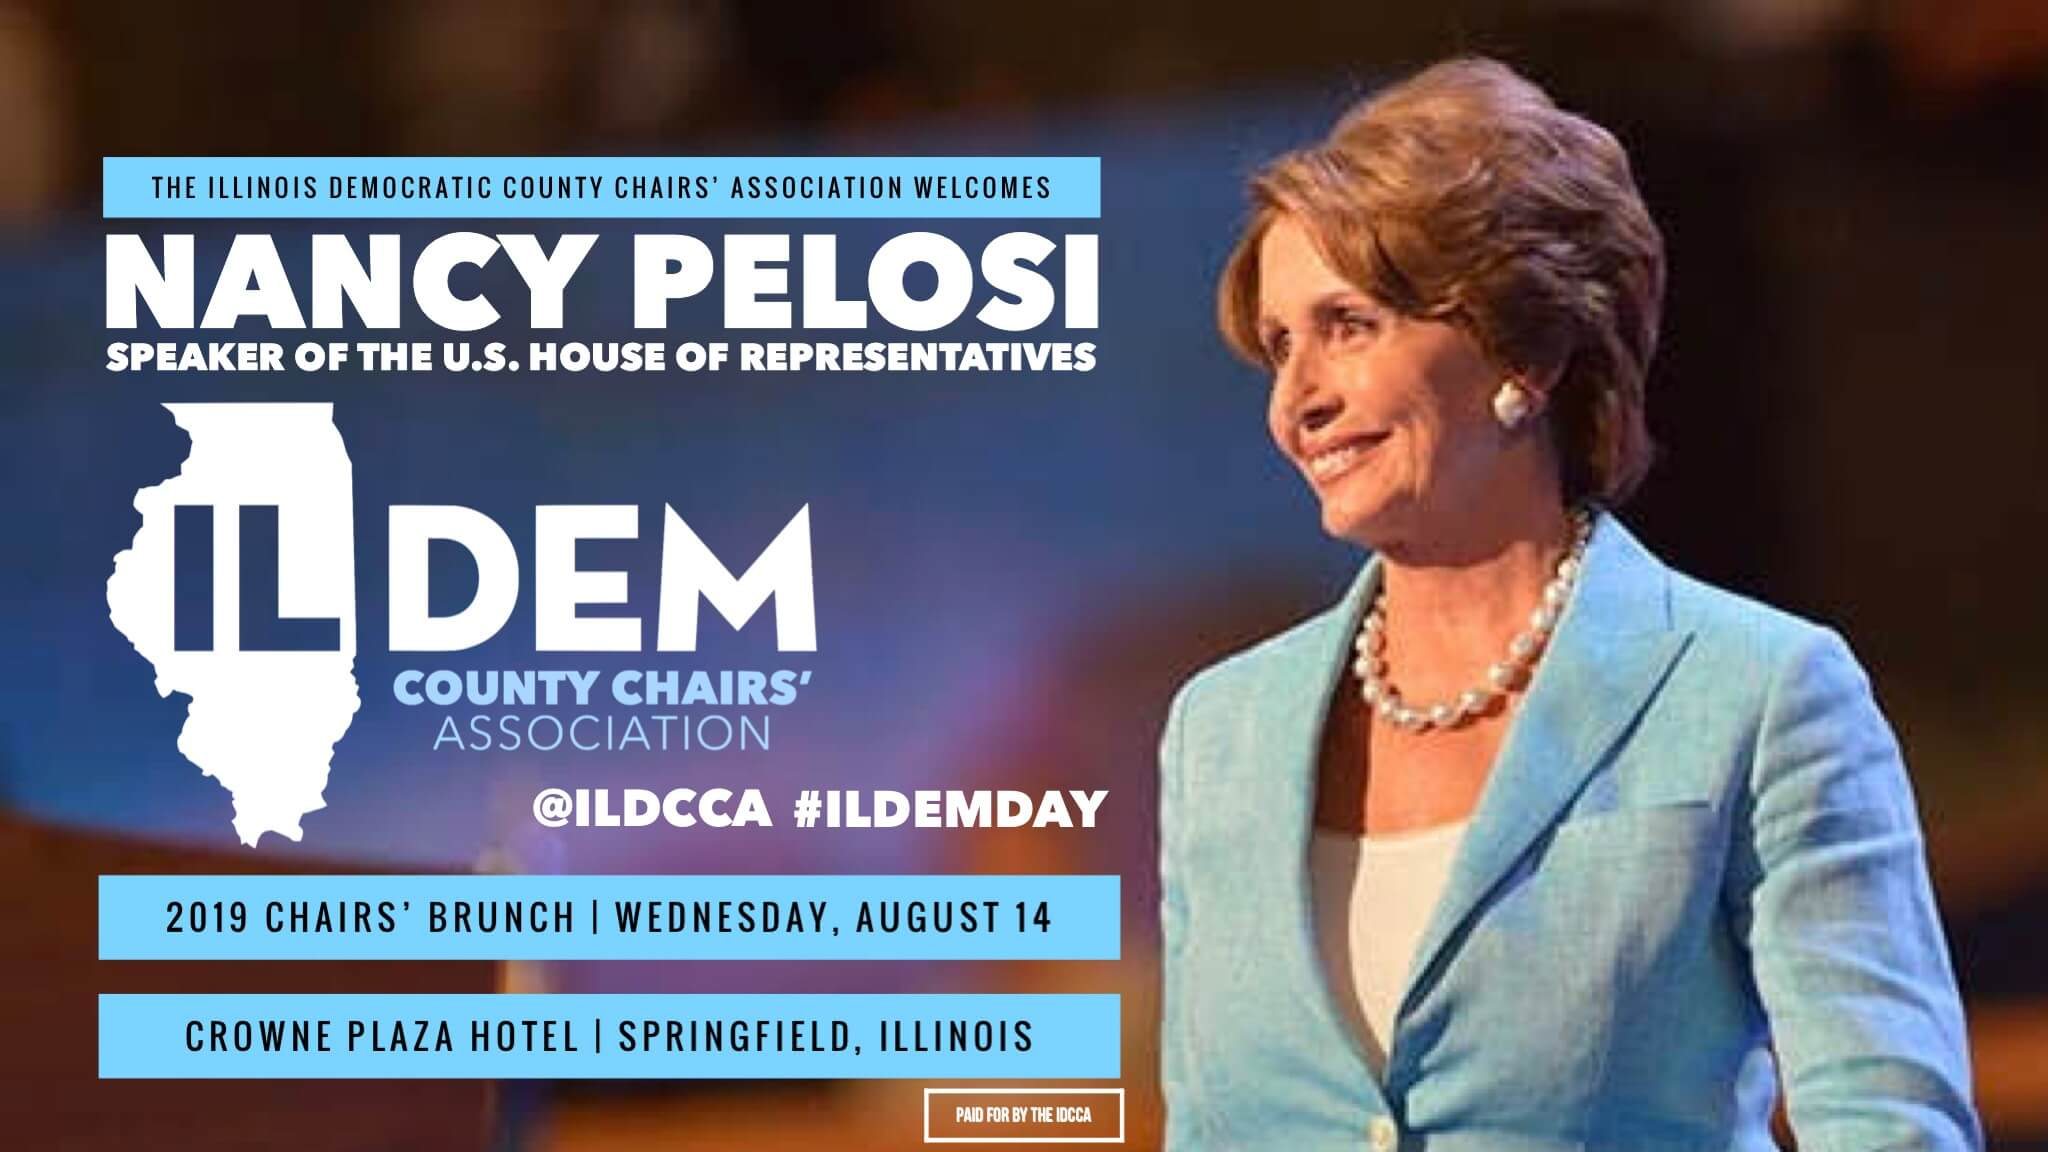 IDCCA Announces Special Guest U.S. House Speaker Nancy Pelosi For 2019 Chairs' Brunch